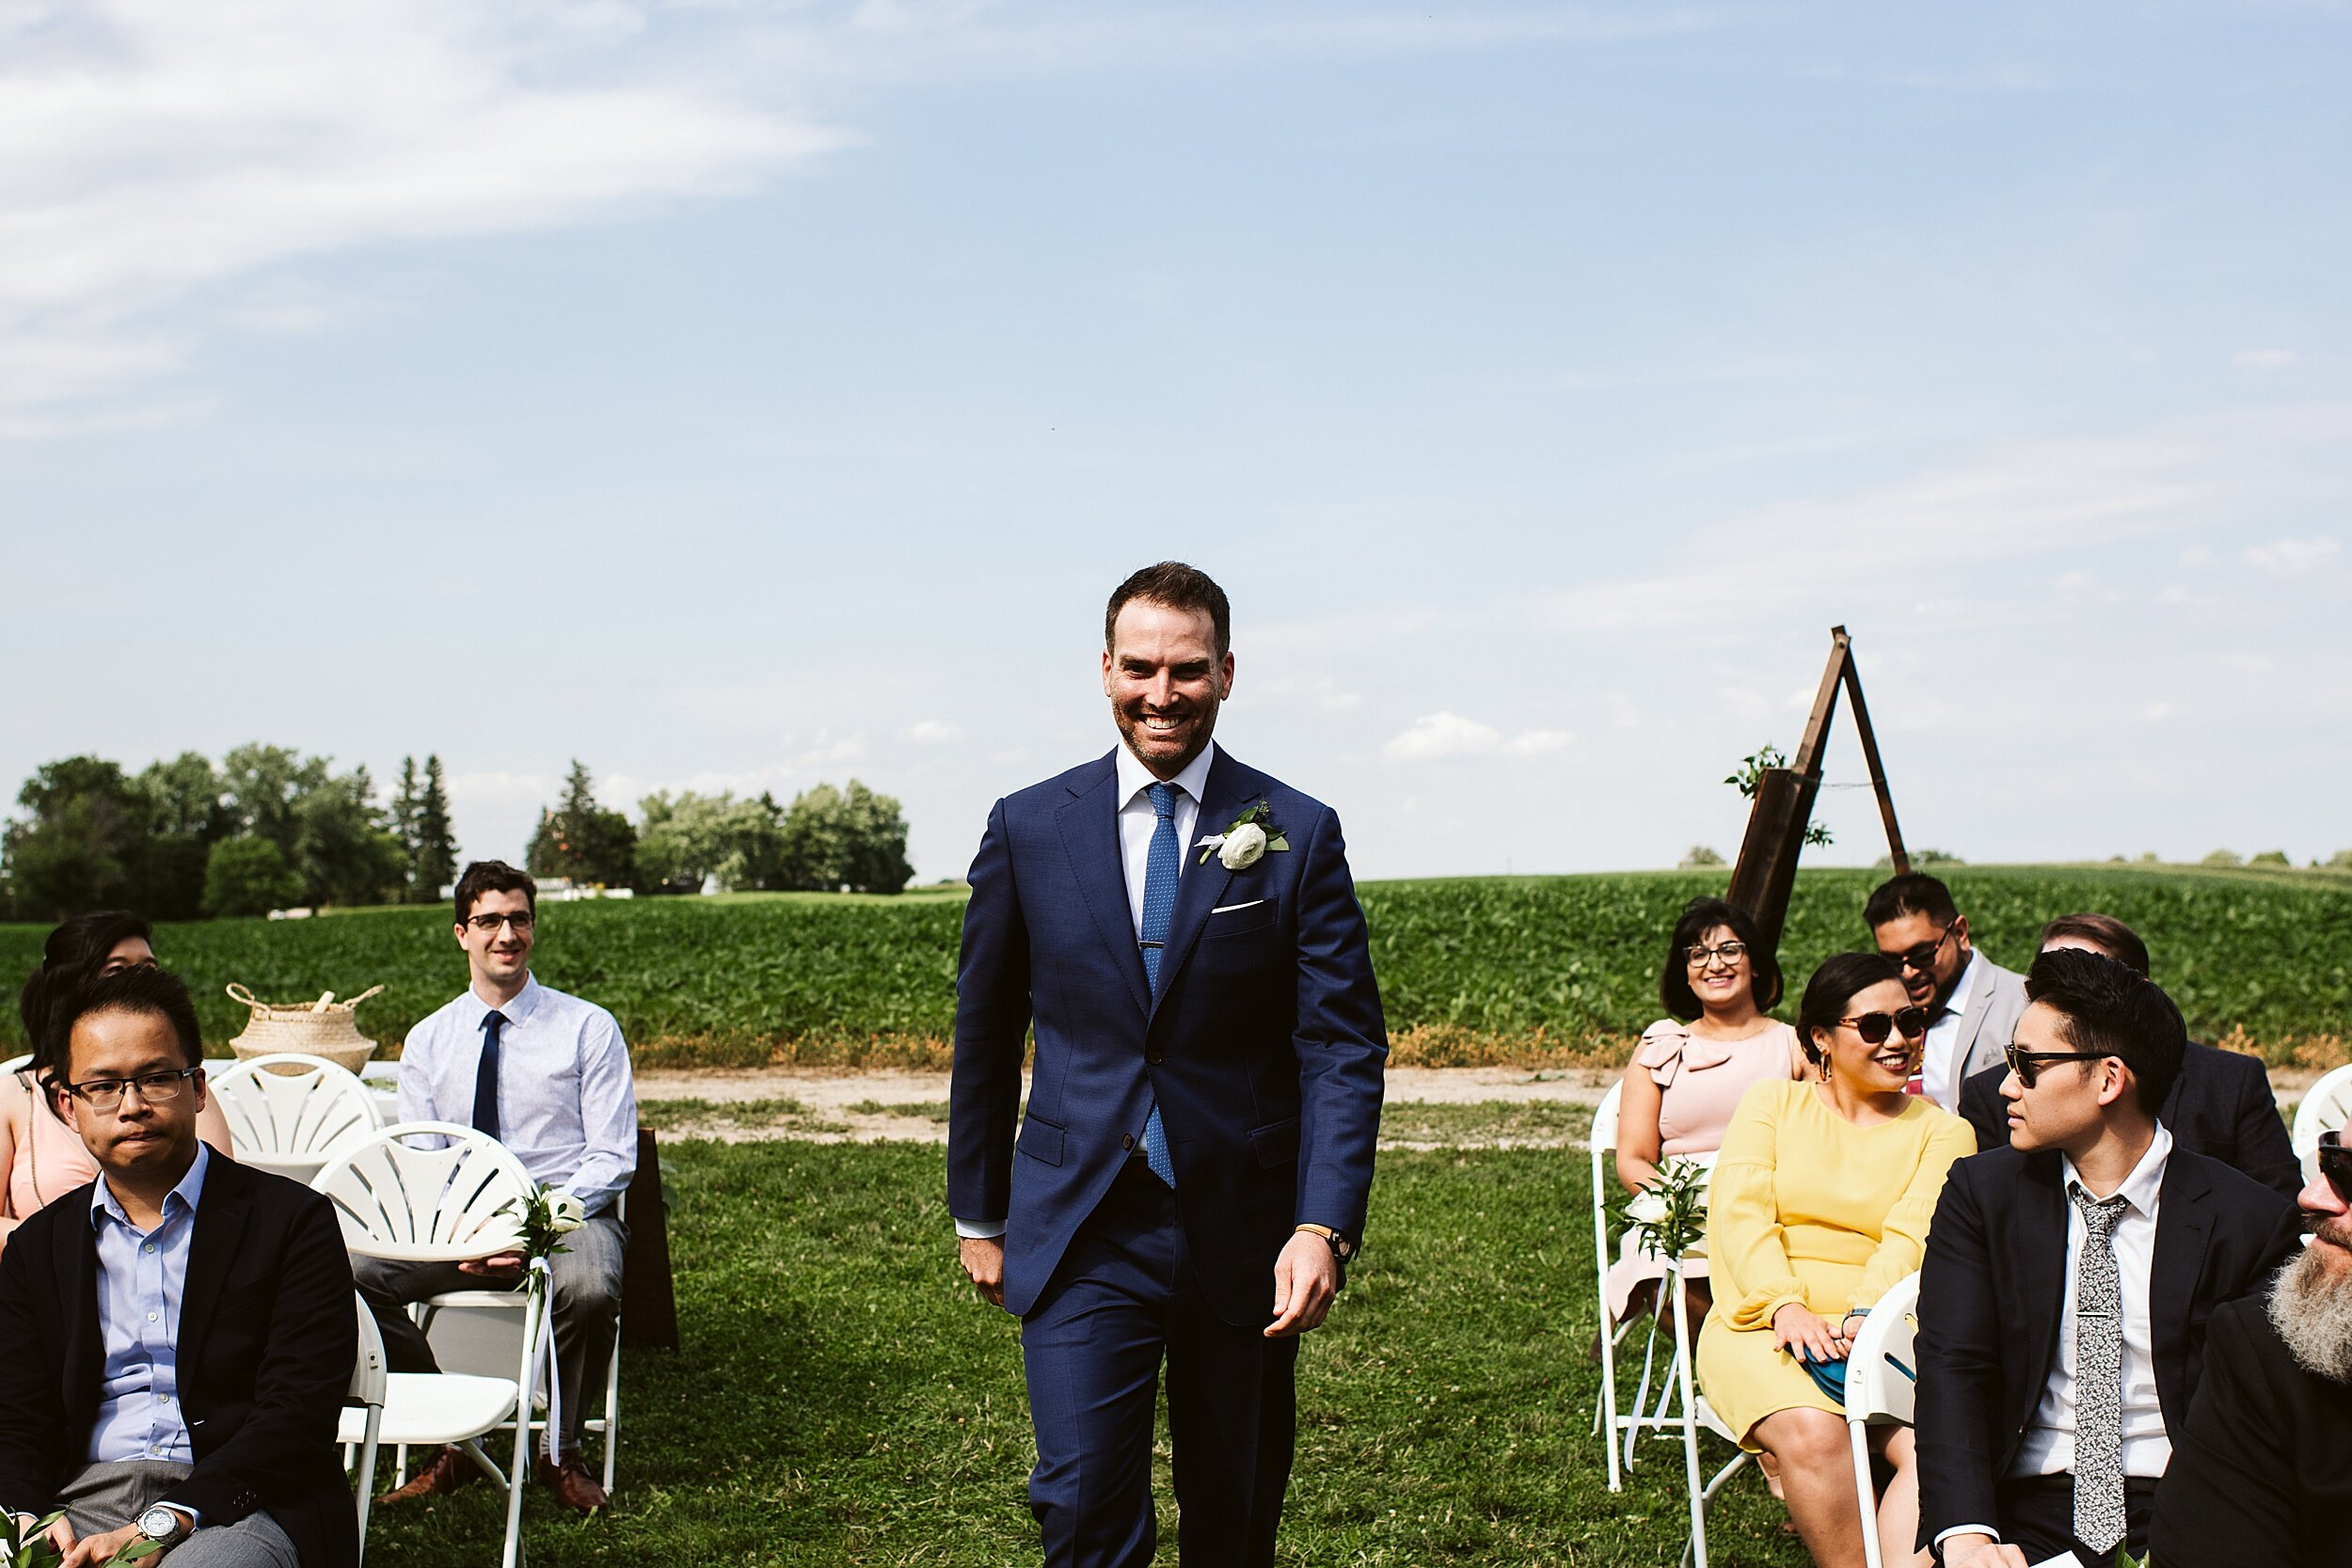 Glen_Drummon_Farm_Wedding_Toronto_Photographers_Fox_Photography_Dyments_0025.jpg